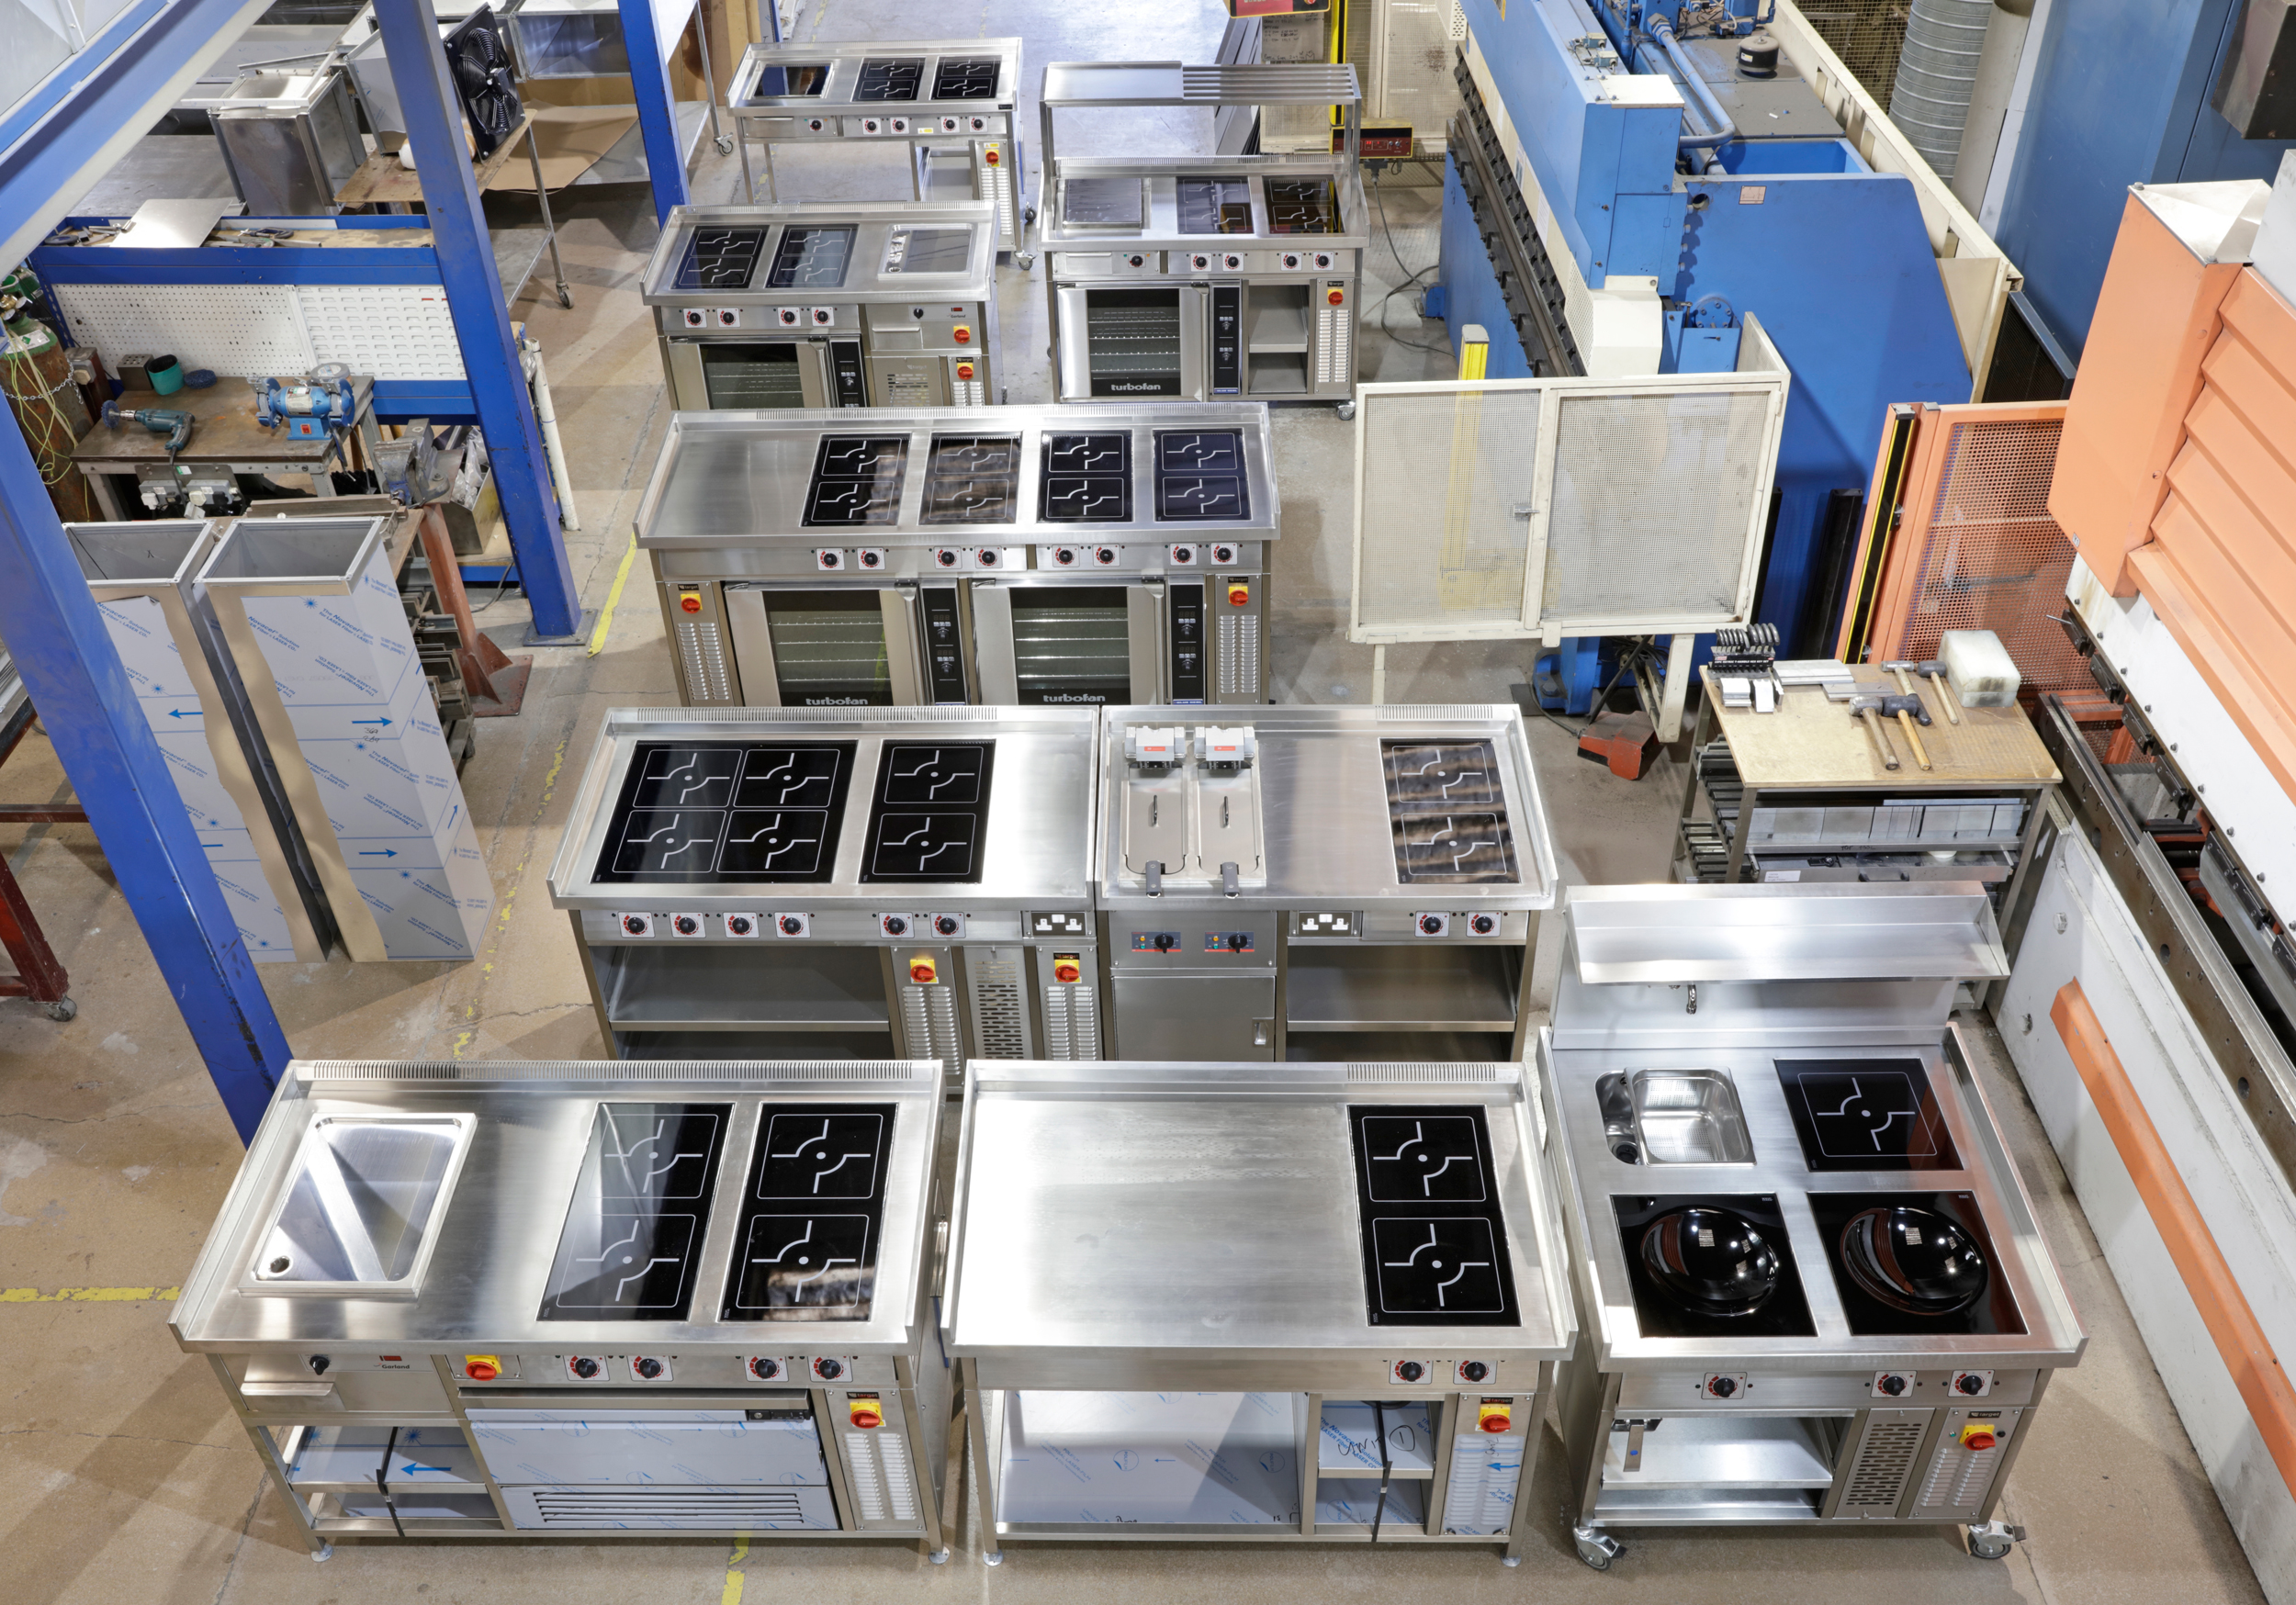 target-catering-equipment-family-business-factory.jpg